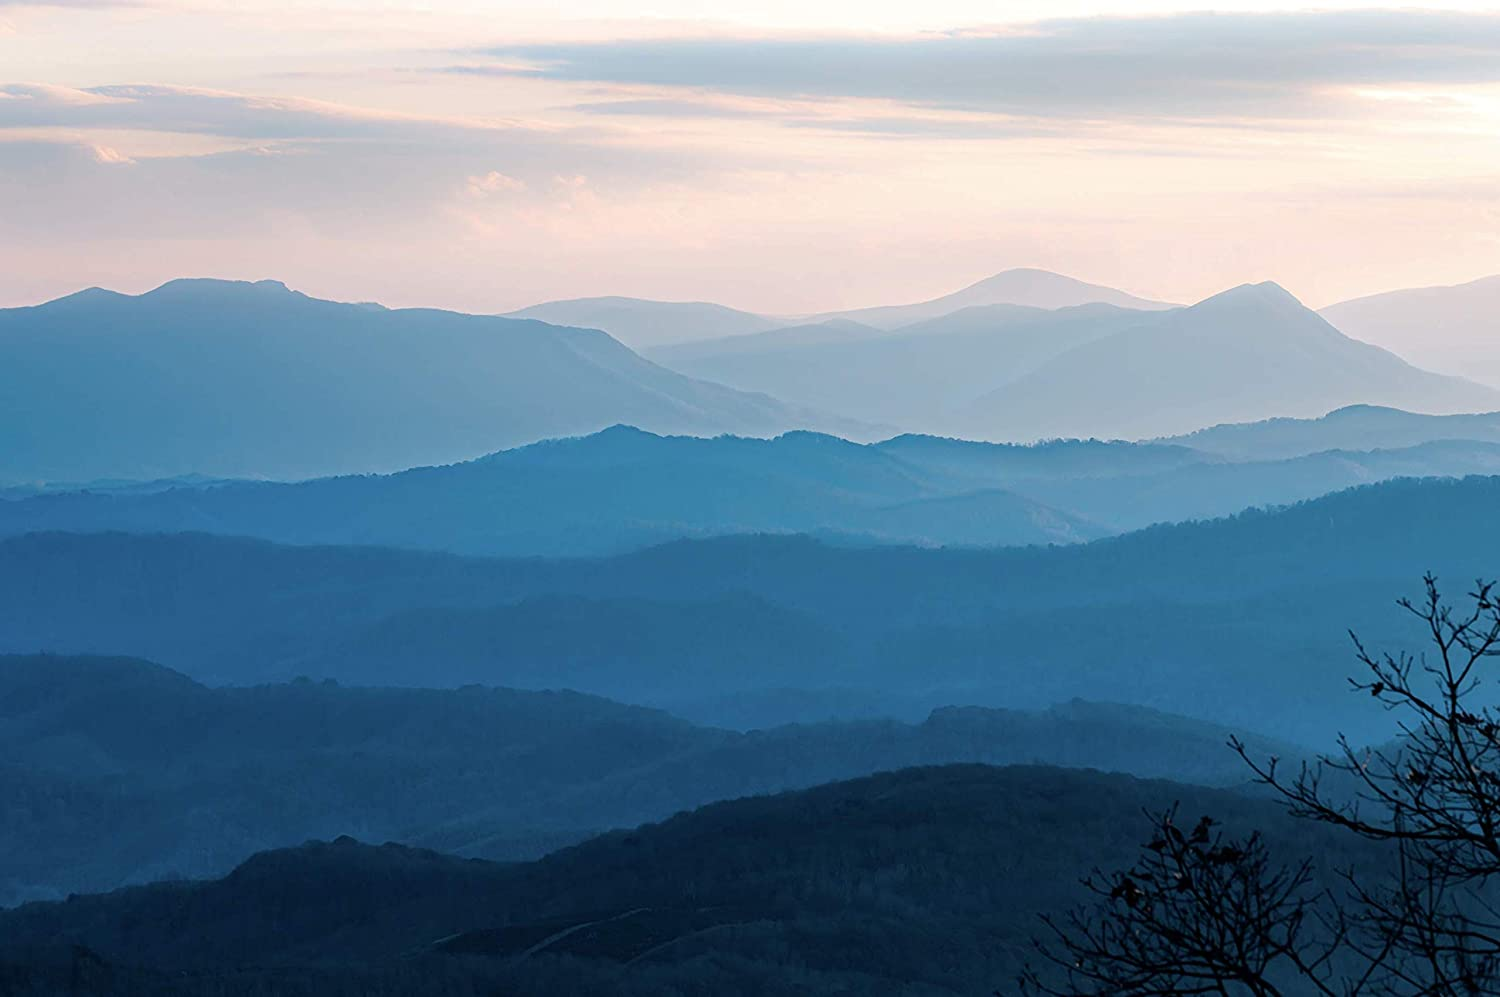 Wall Art Gallery Prints - Blue Ridge Mountain Range Sunset Landscape Photo - Nature Decor Artwork for Living Room Bedroom Office Home -Lustre Photos Metallic Print or Canvas Pictures for Decorations